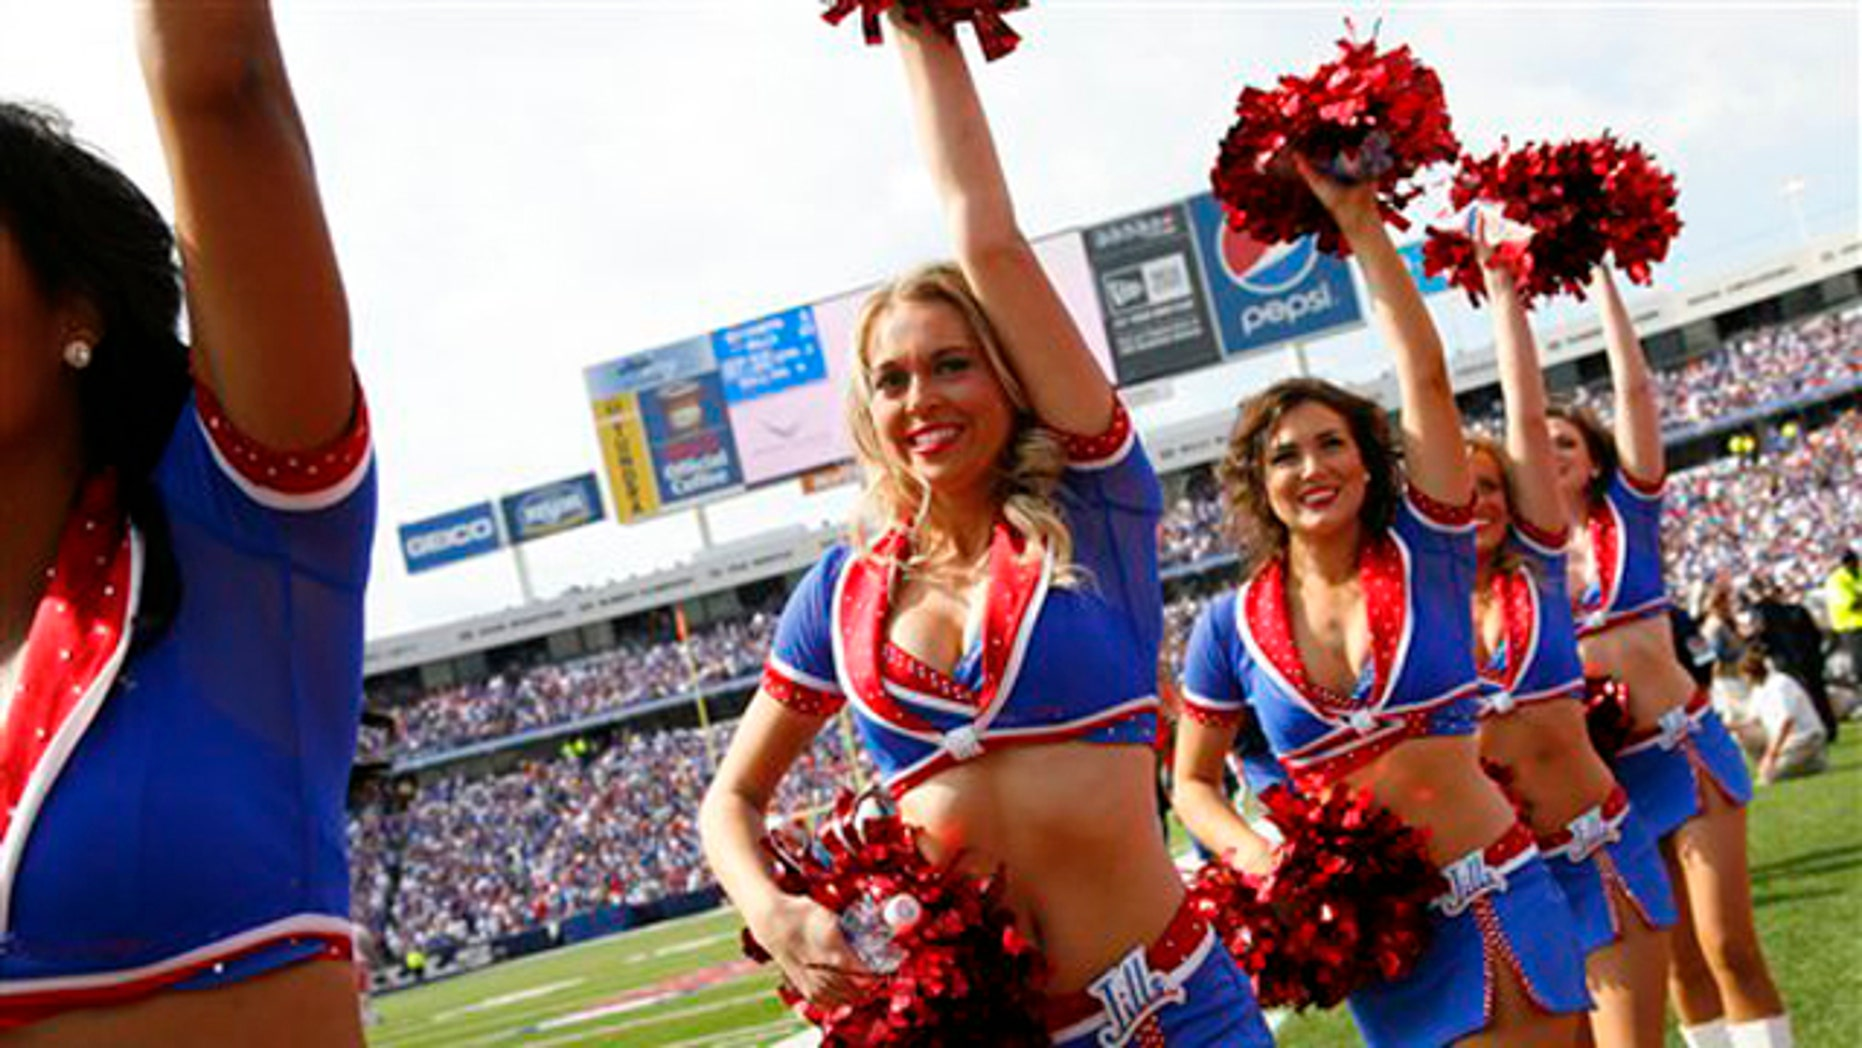 September 16, 2012: Buffalo Bills cheerleaders perform during a game against the Kansas City Chiefs in Orchard Park, N.Y. (AP Photo/Bill Wippert)